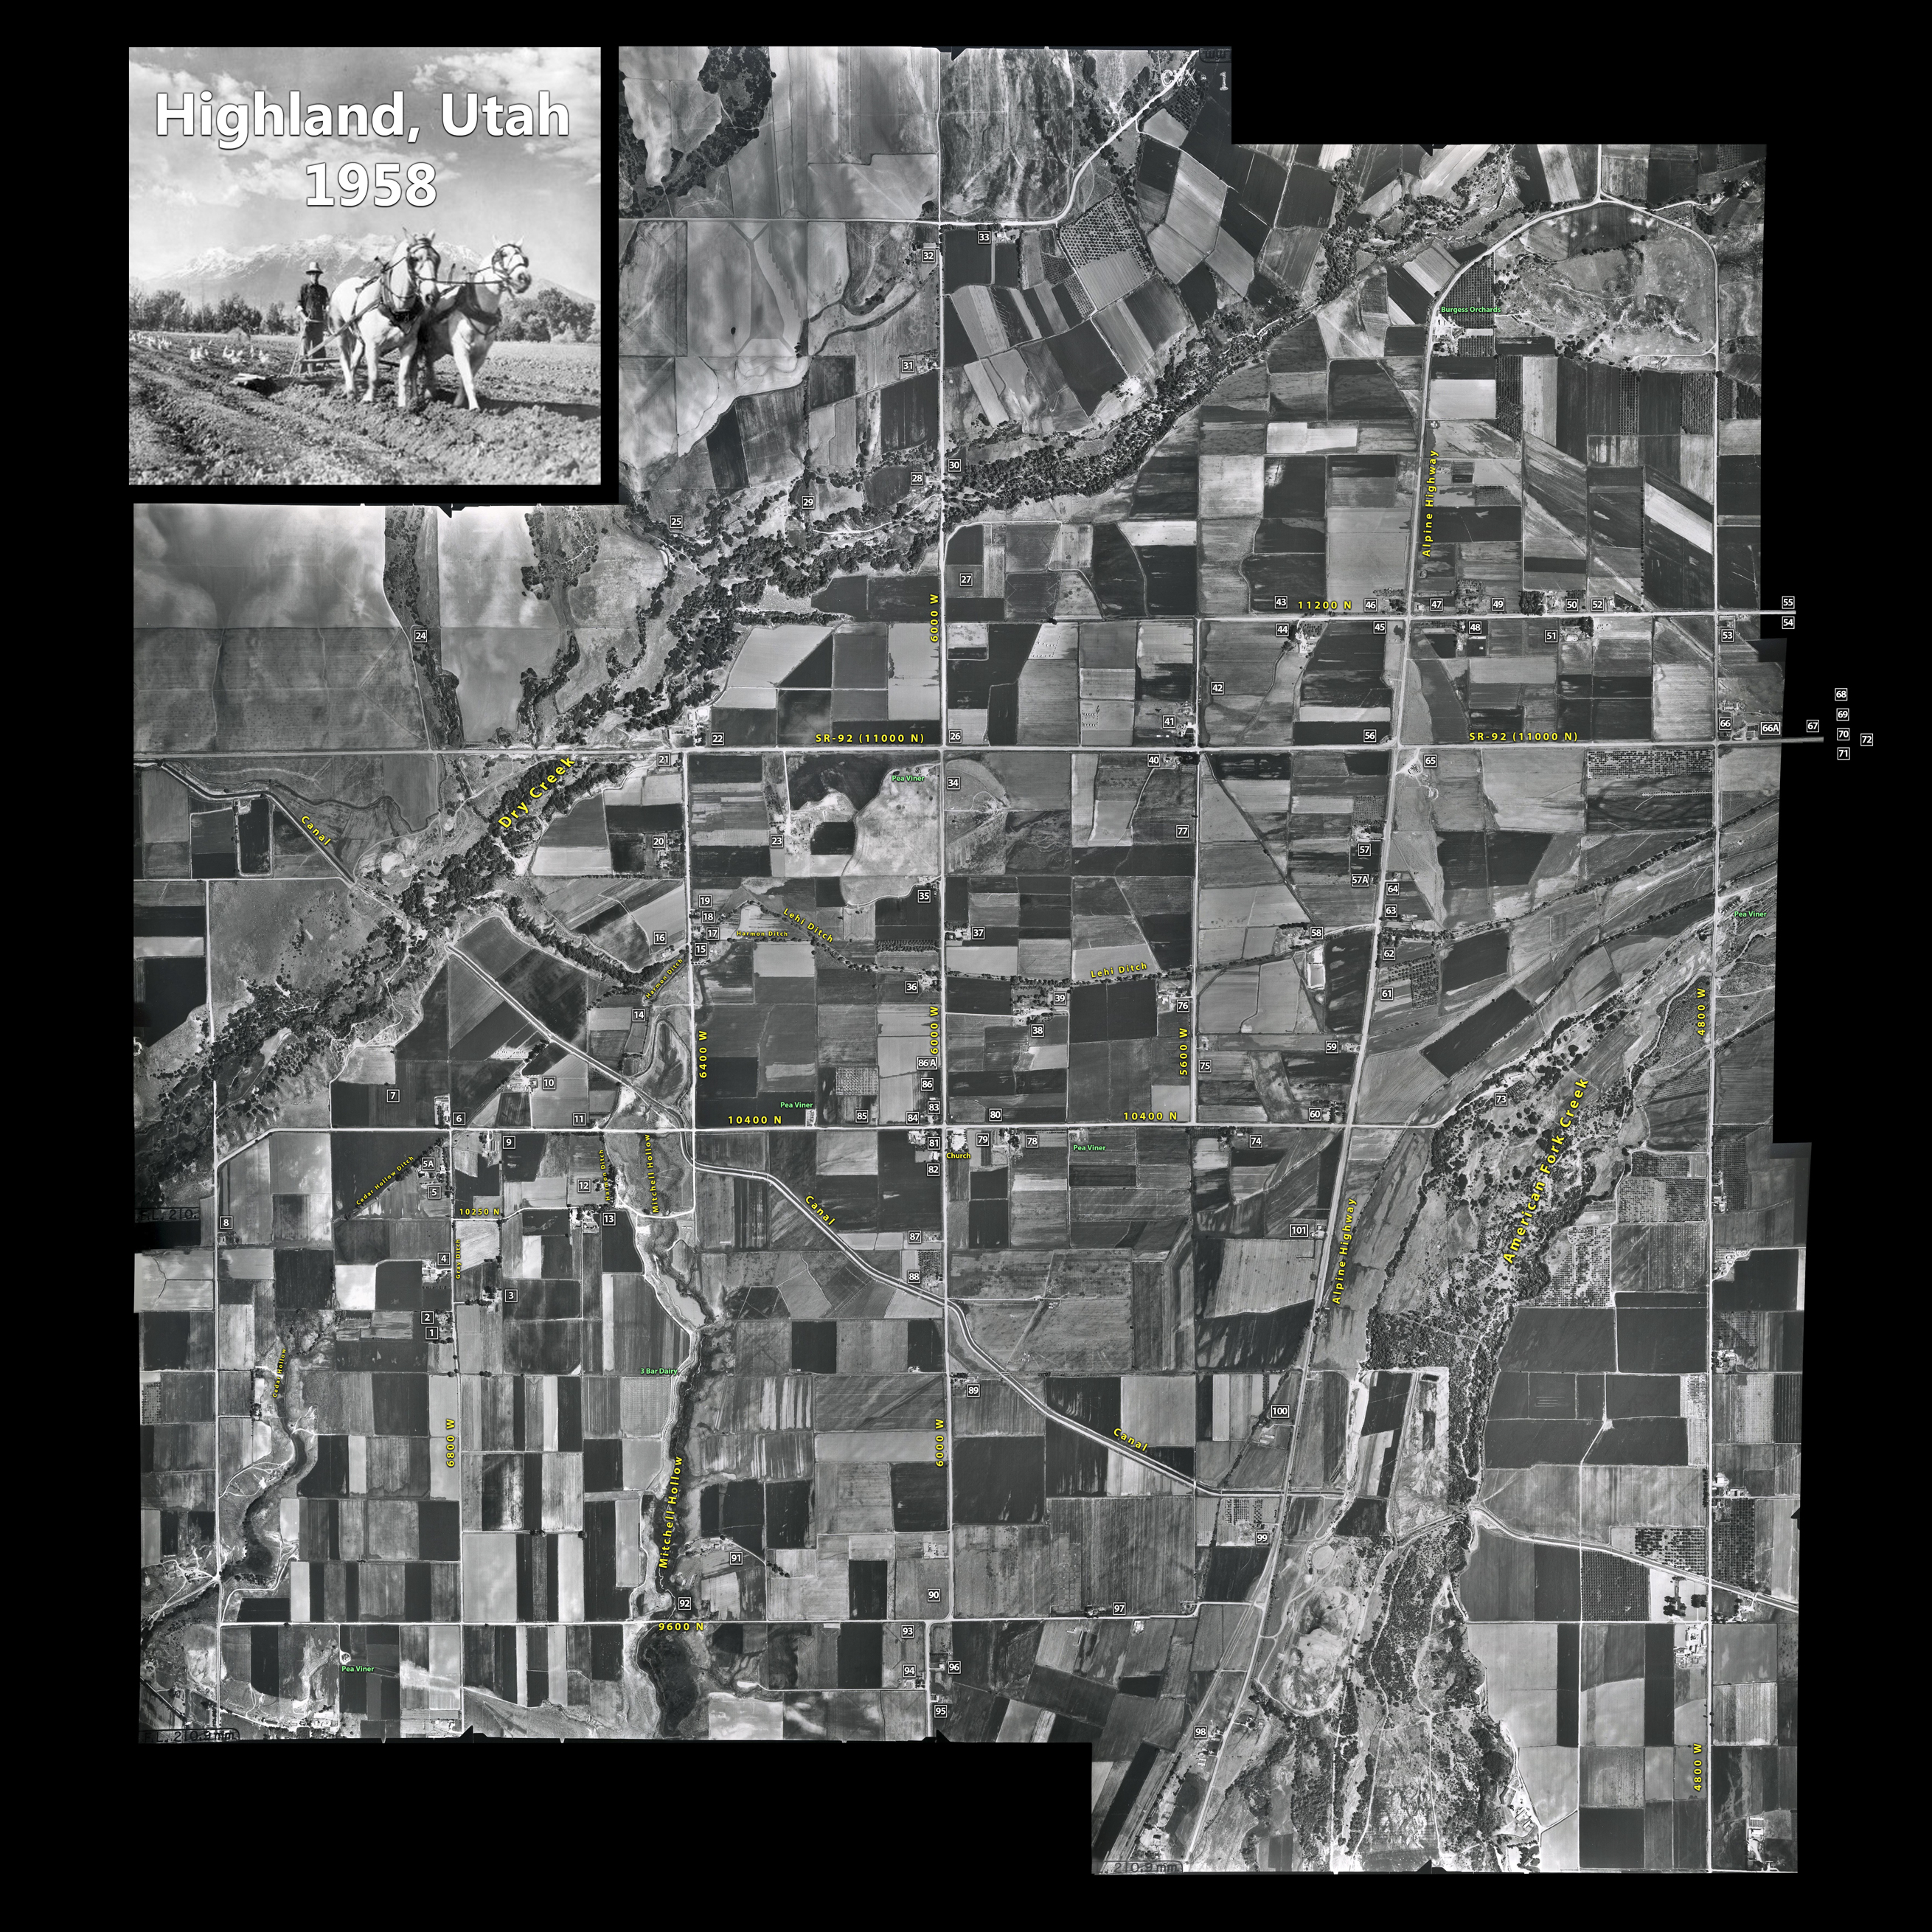 1958 Highland Aerial Map